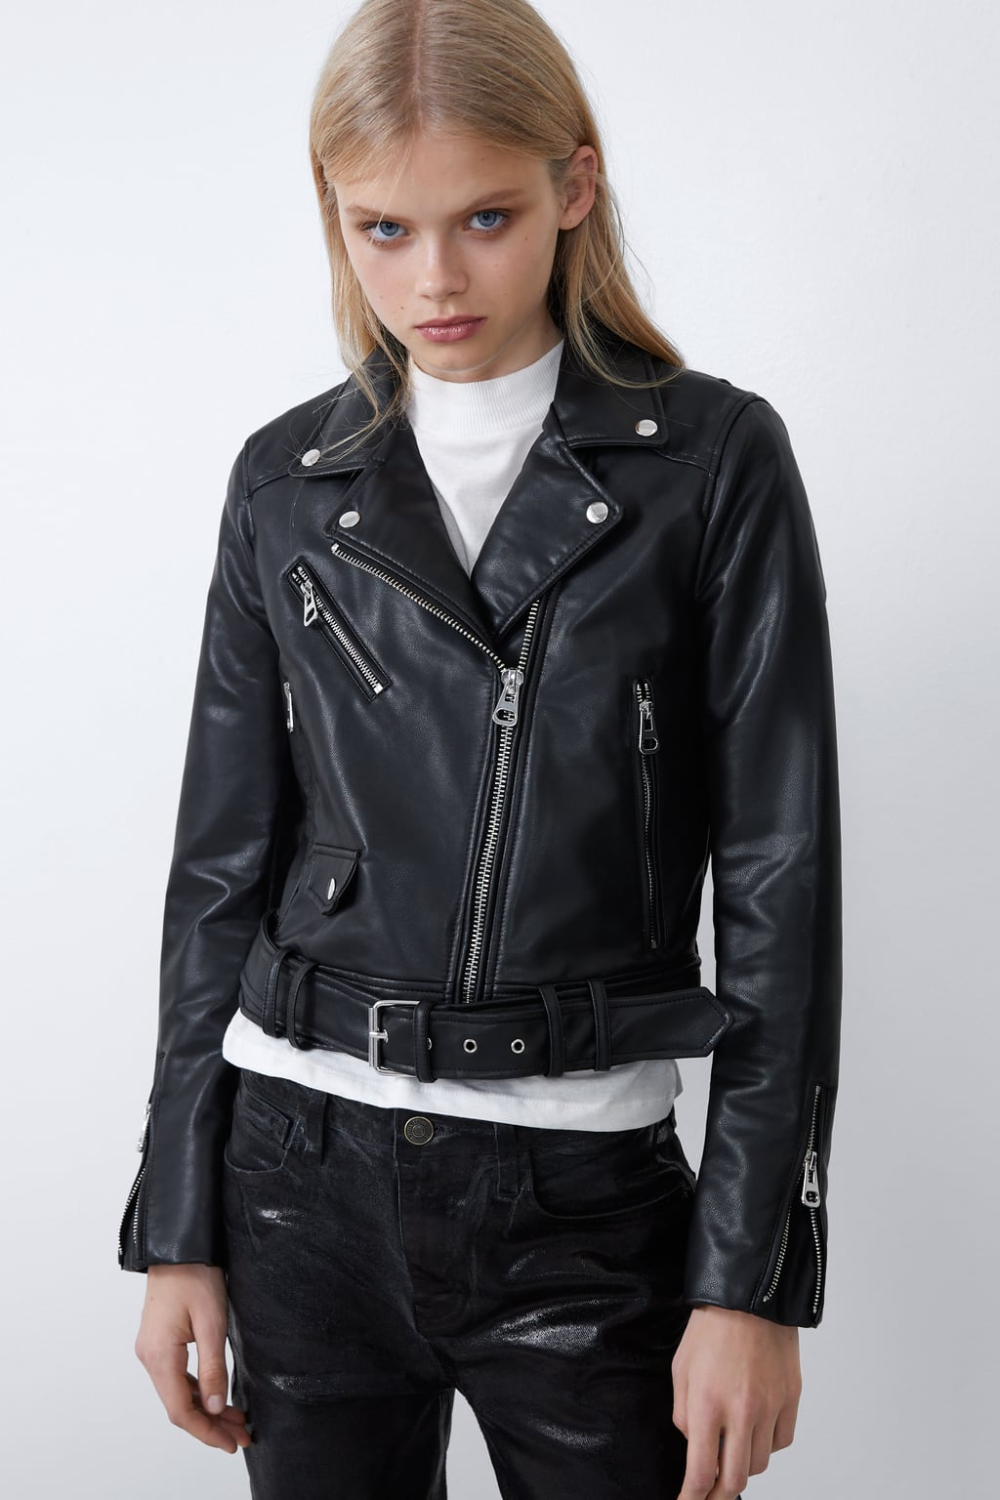 Faux leather jacket Leather jackets women, Faux leather